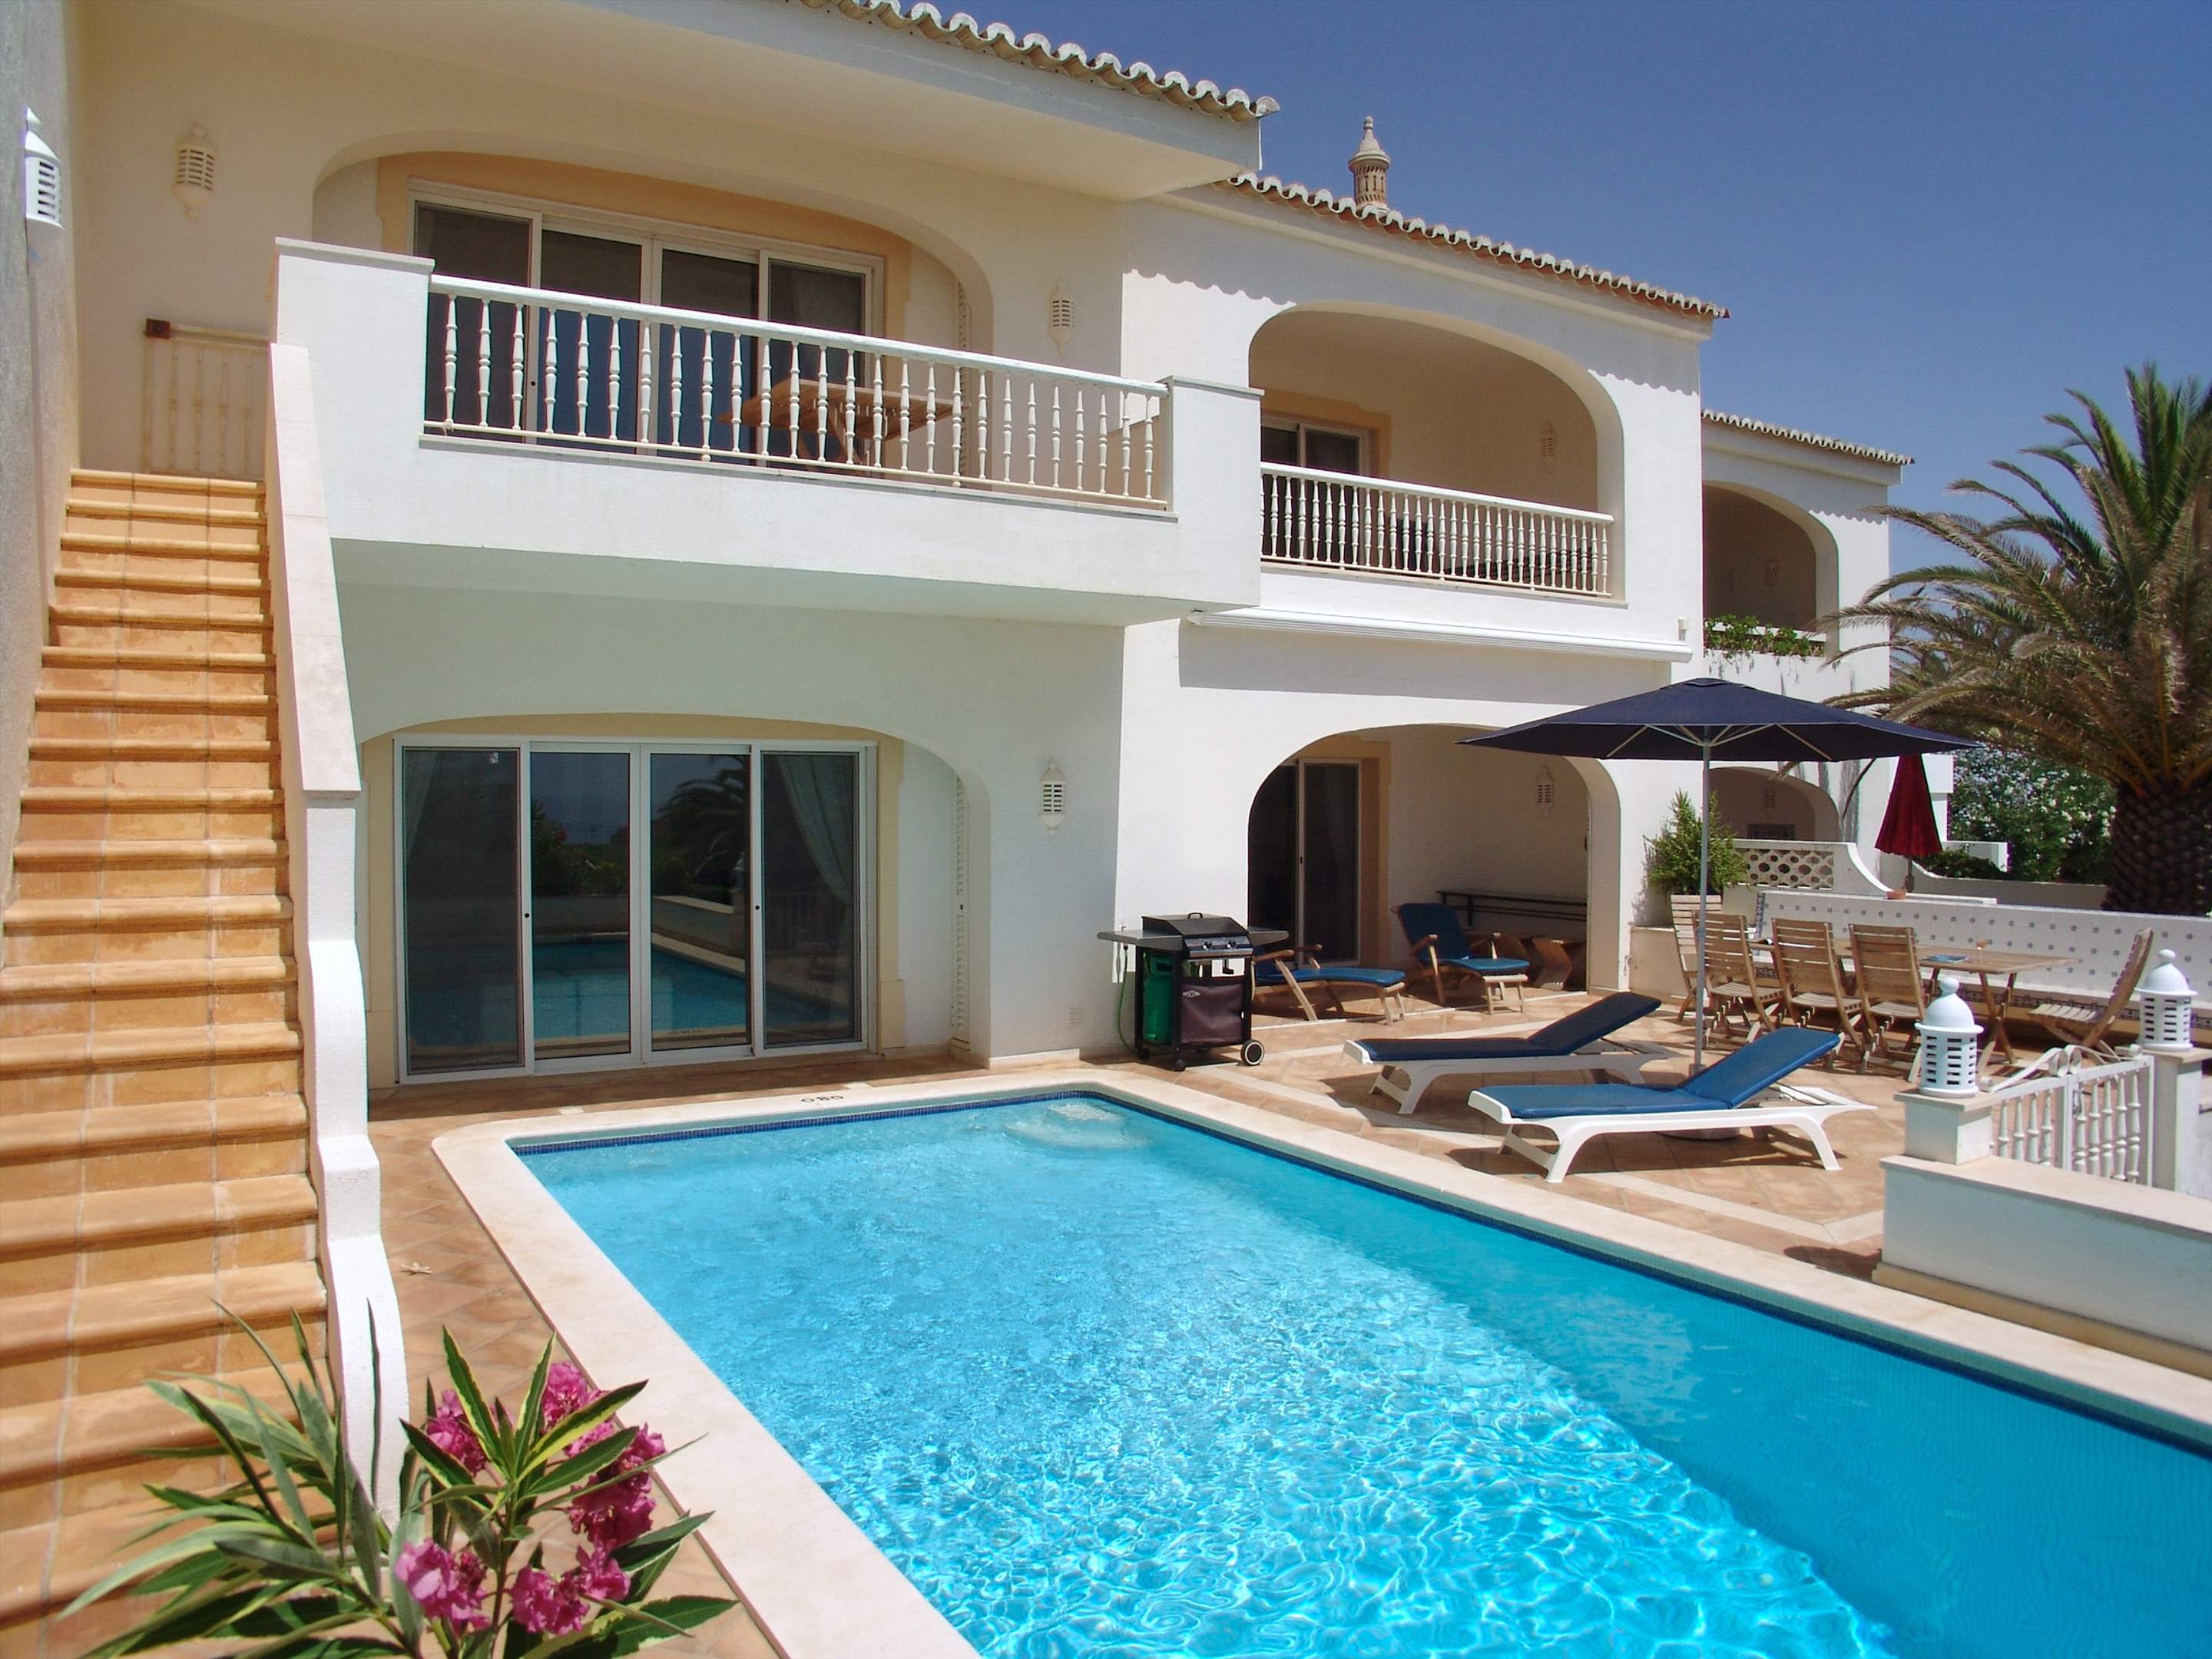 Villas Louisa, 3 bedroom, 3 bedroom villa in Vale do Lobo, Algarve Photo #1